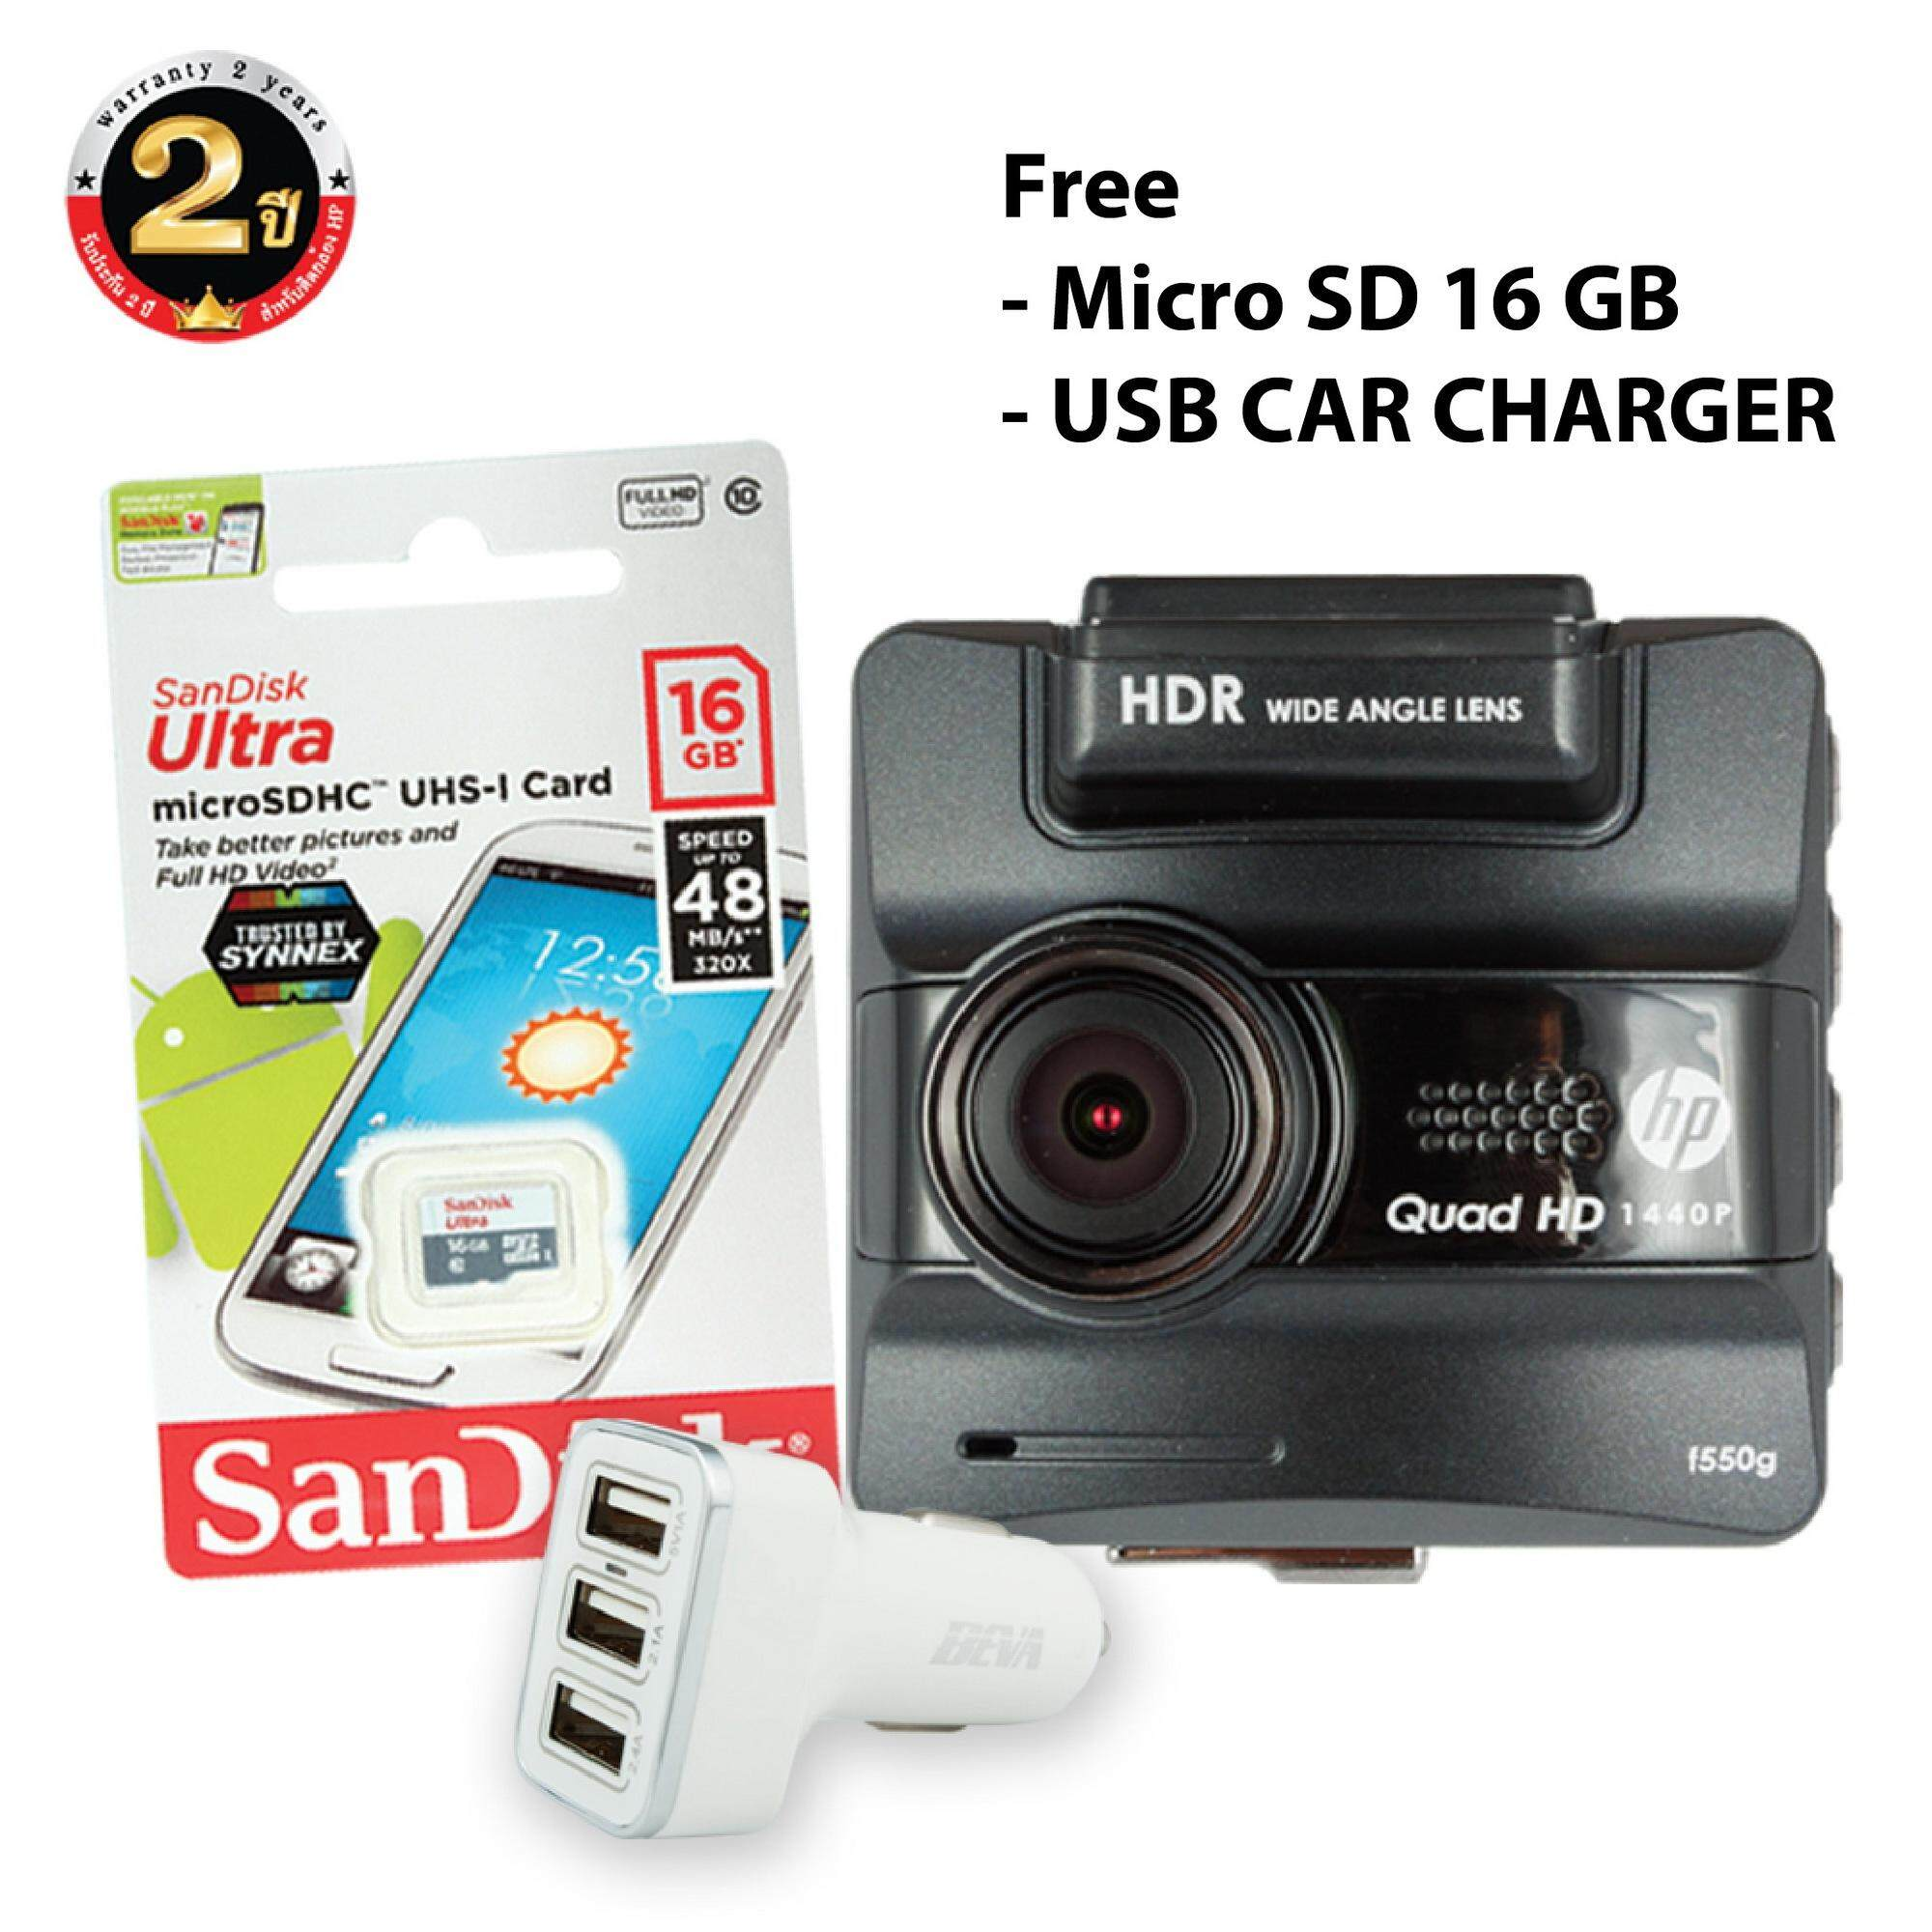 กล้องติดรถยนต์ HP CARCAMCORDERF550g BLACK+ฟรี MICRO SD CARD 16GB+BEVA CAR CHARGER C063 USB 3 PORTS